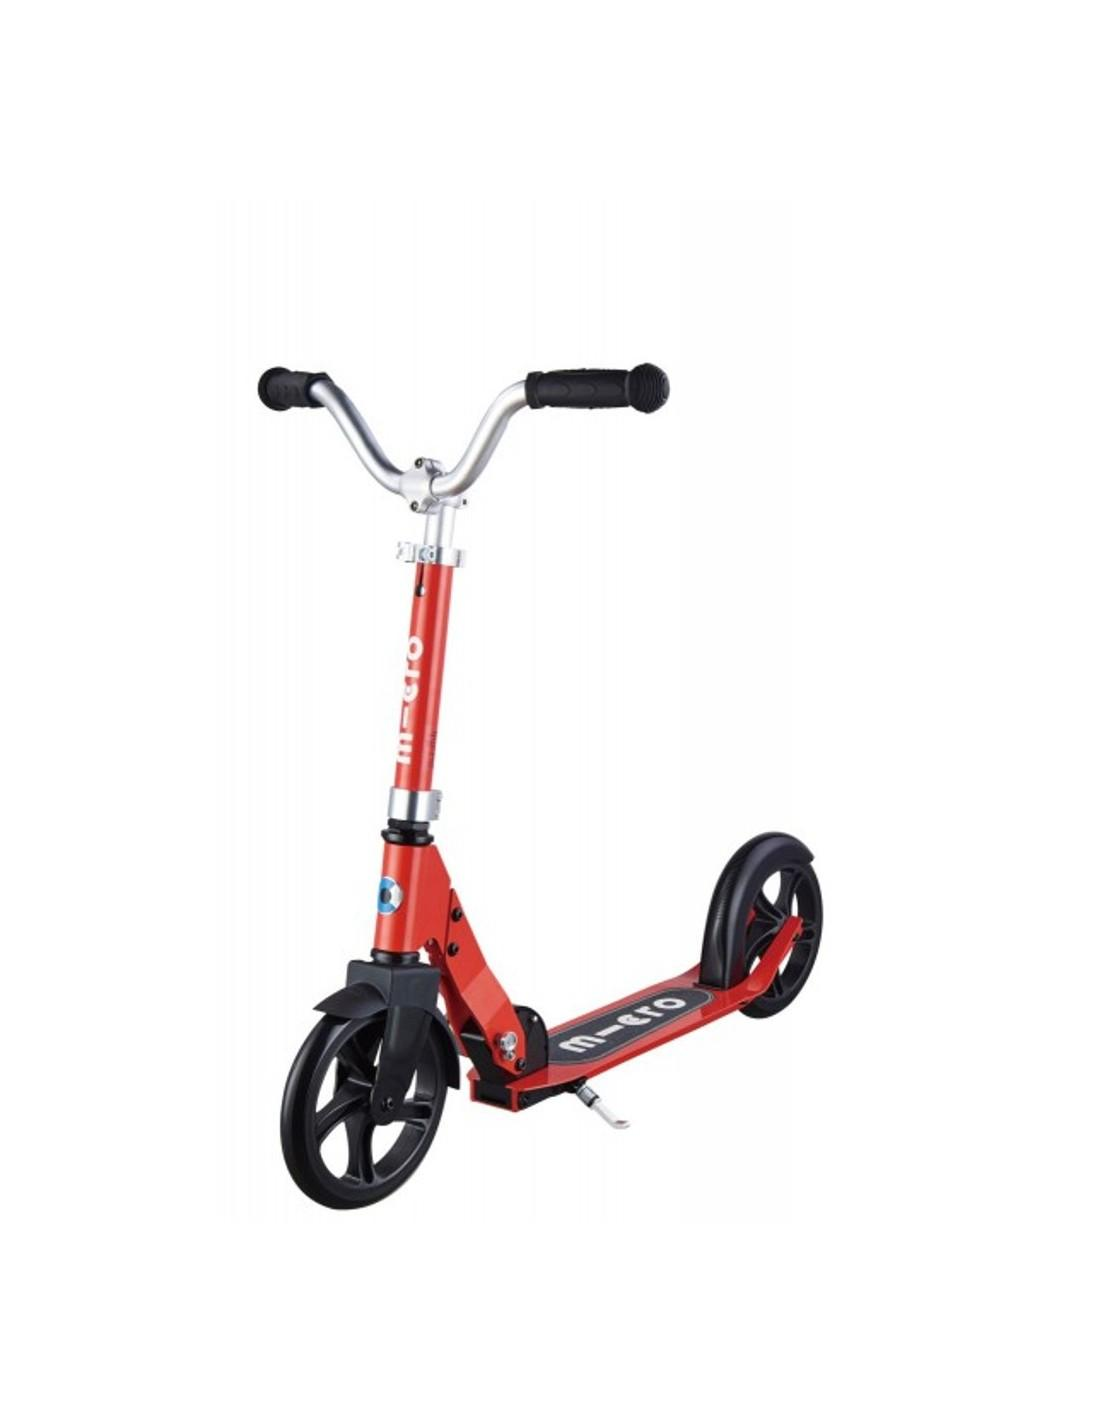 Micro Scooter Cruiser red Scooterreifen - PU Reifen, Scooterart - Scooter, Scooterfarbe - Rot,